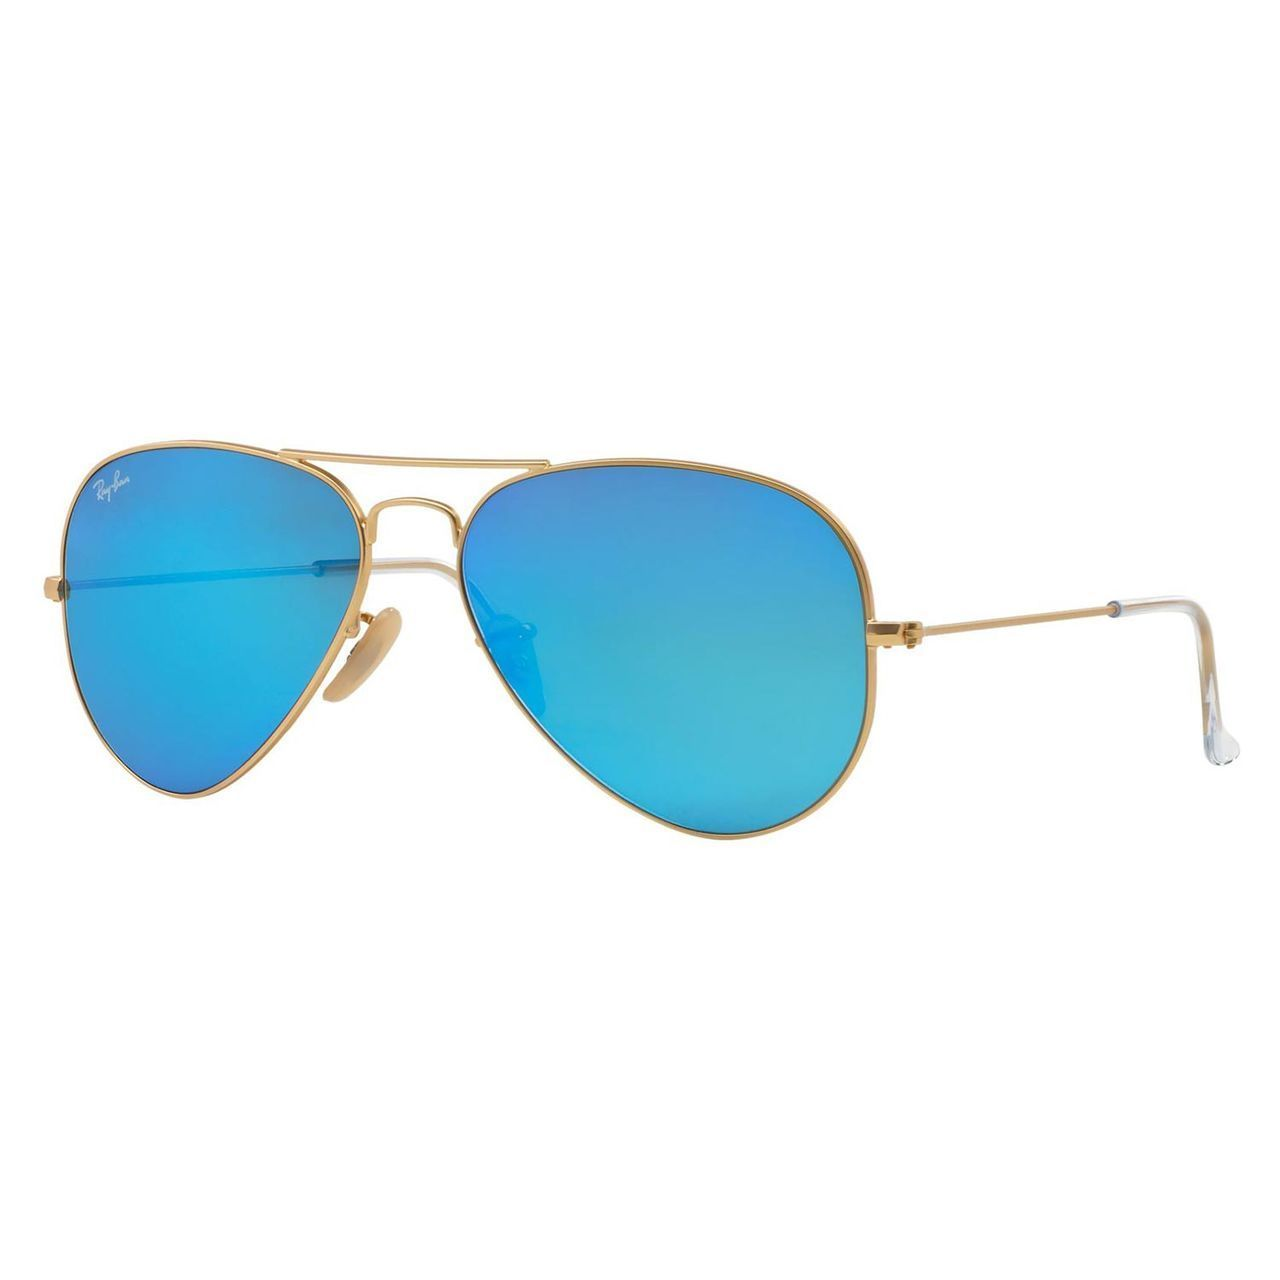 33d08fbb1f5 Ray- Ban Aviator RB 3205 Unisex Gold Frame Blue Mirror Lens Sunglasses